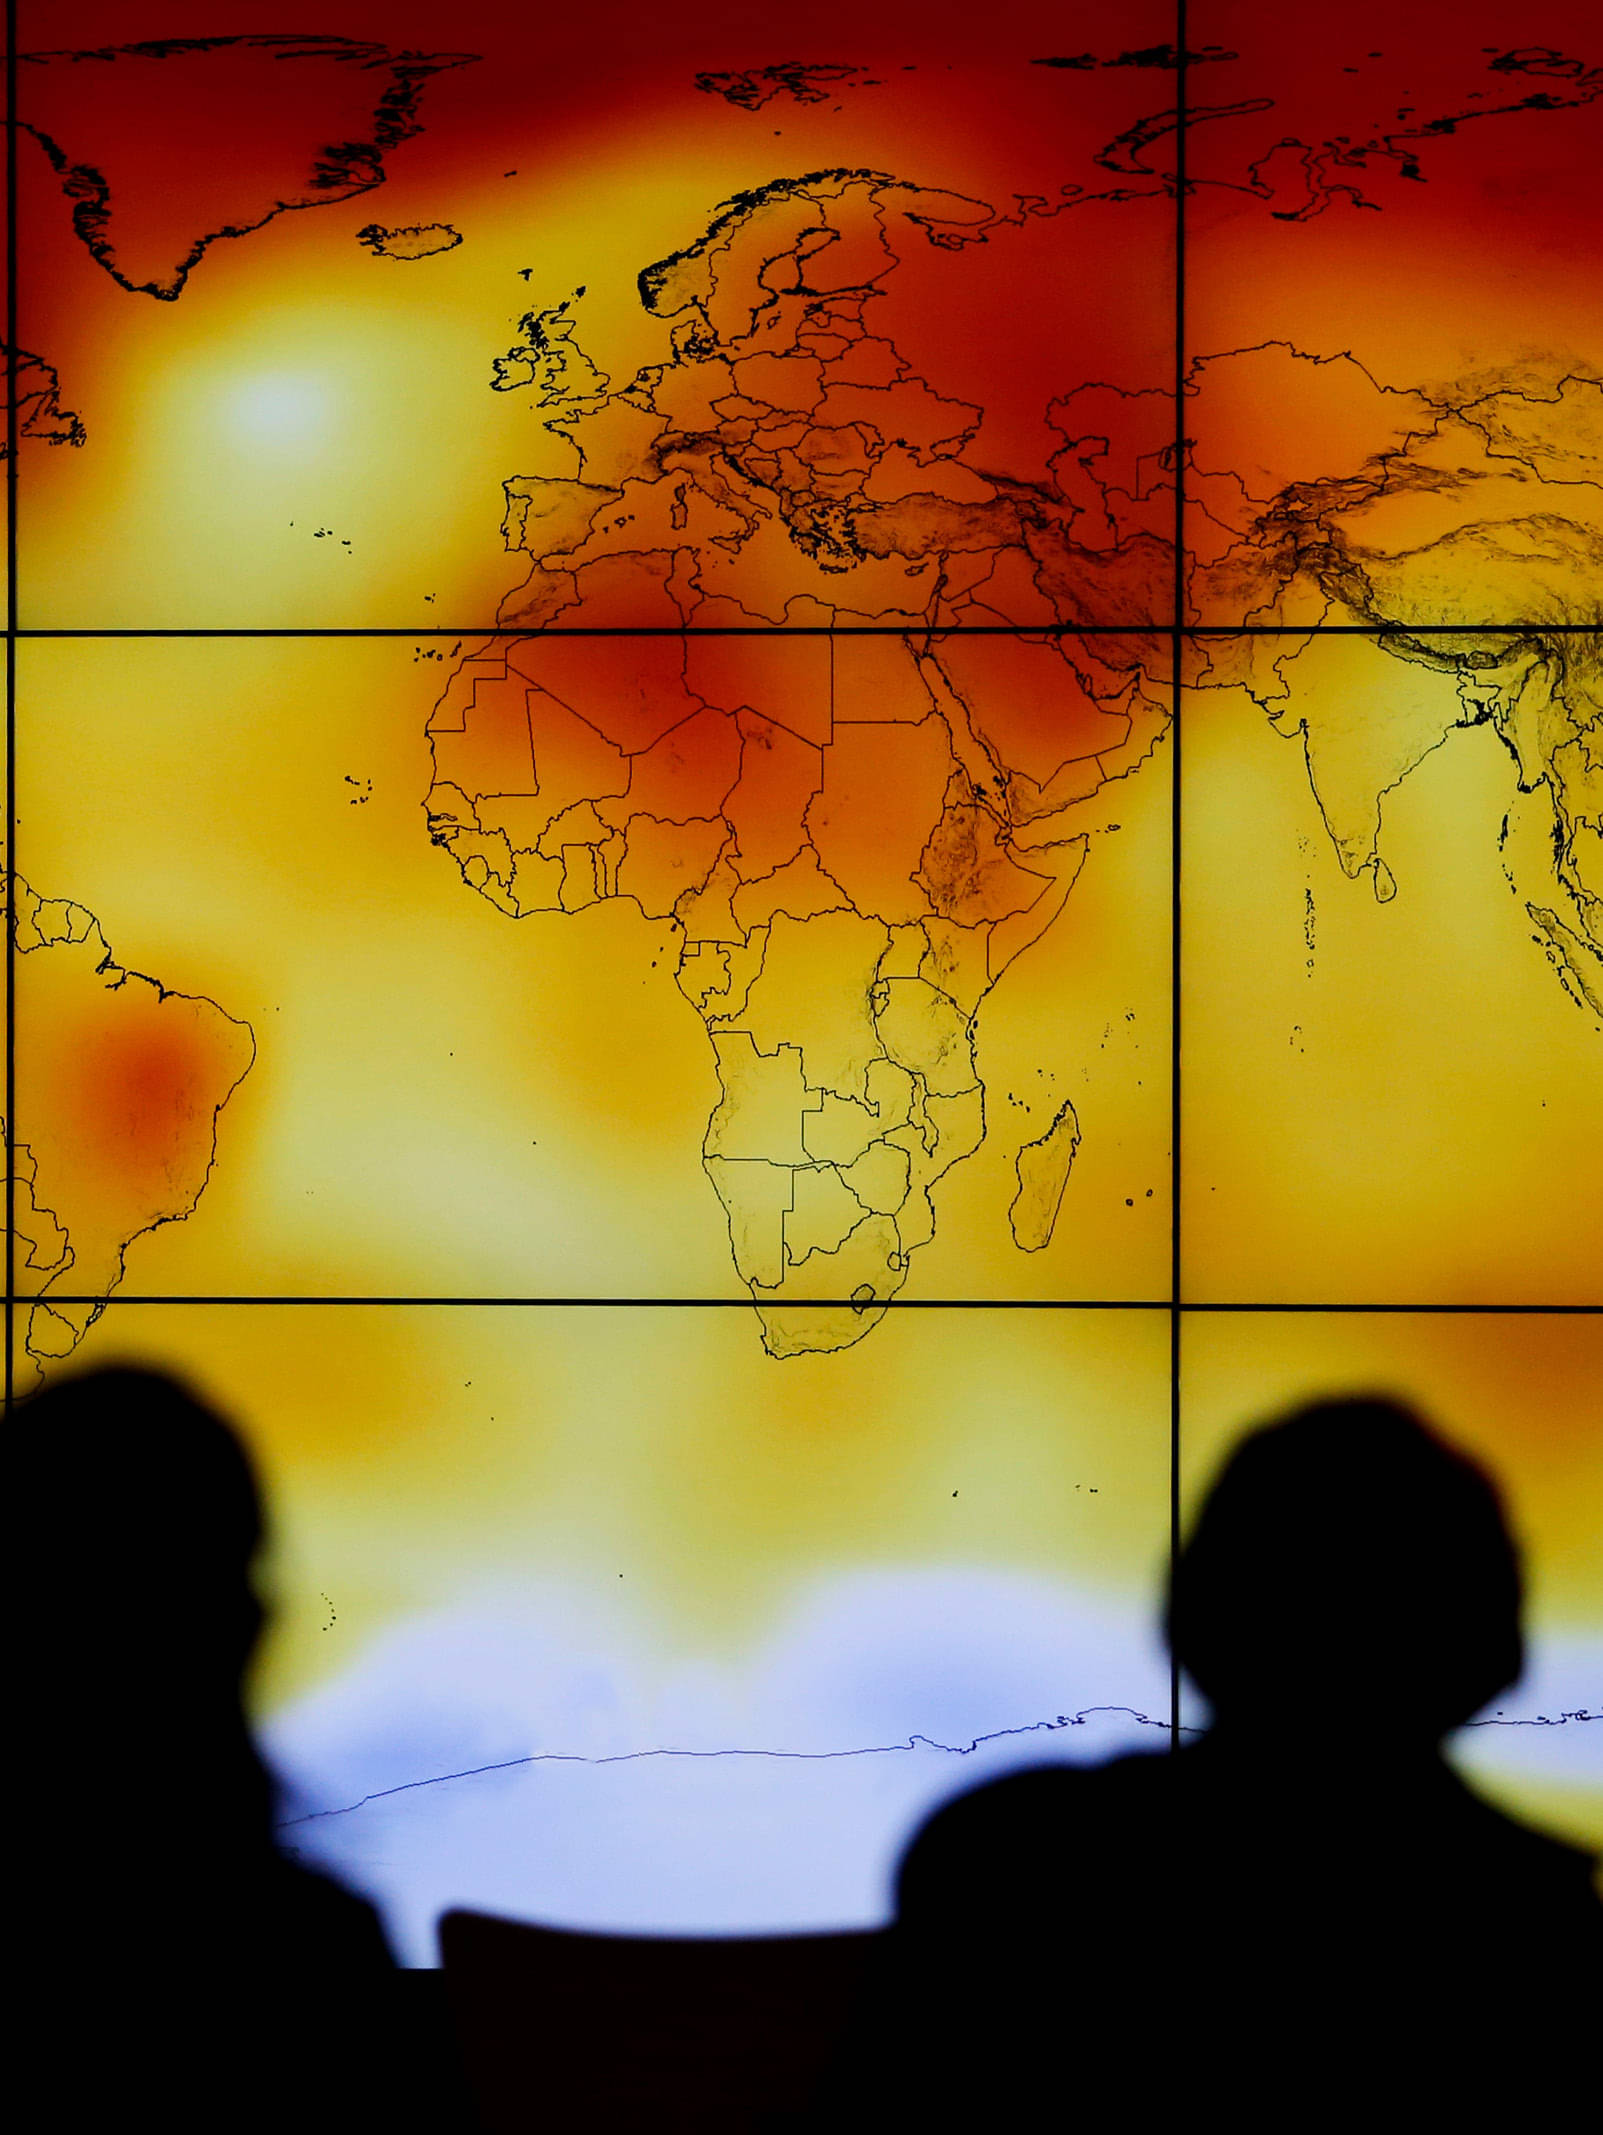 UN REPORT: INCREASED WARMING CLOSING IN ON AGREED UPON LIMIT